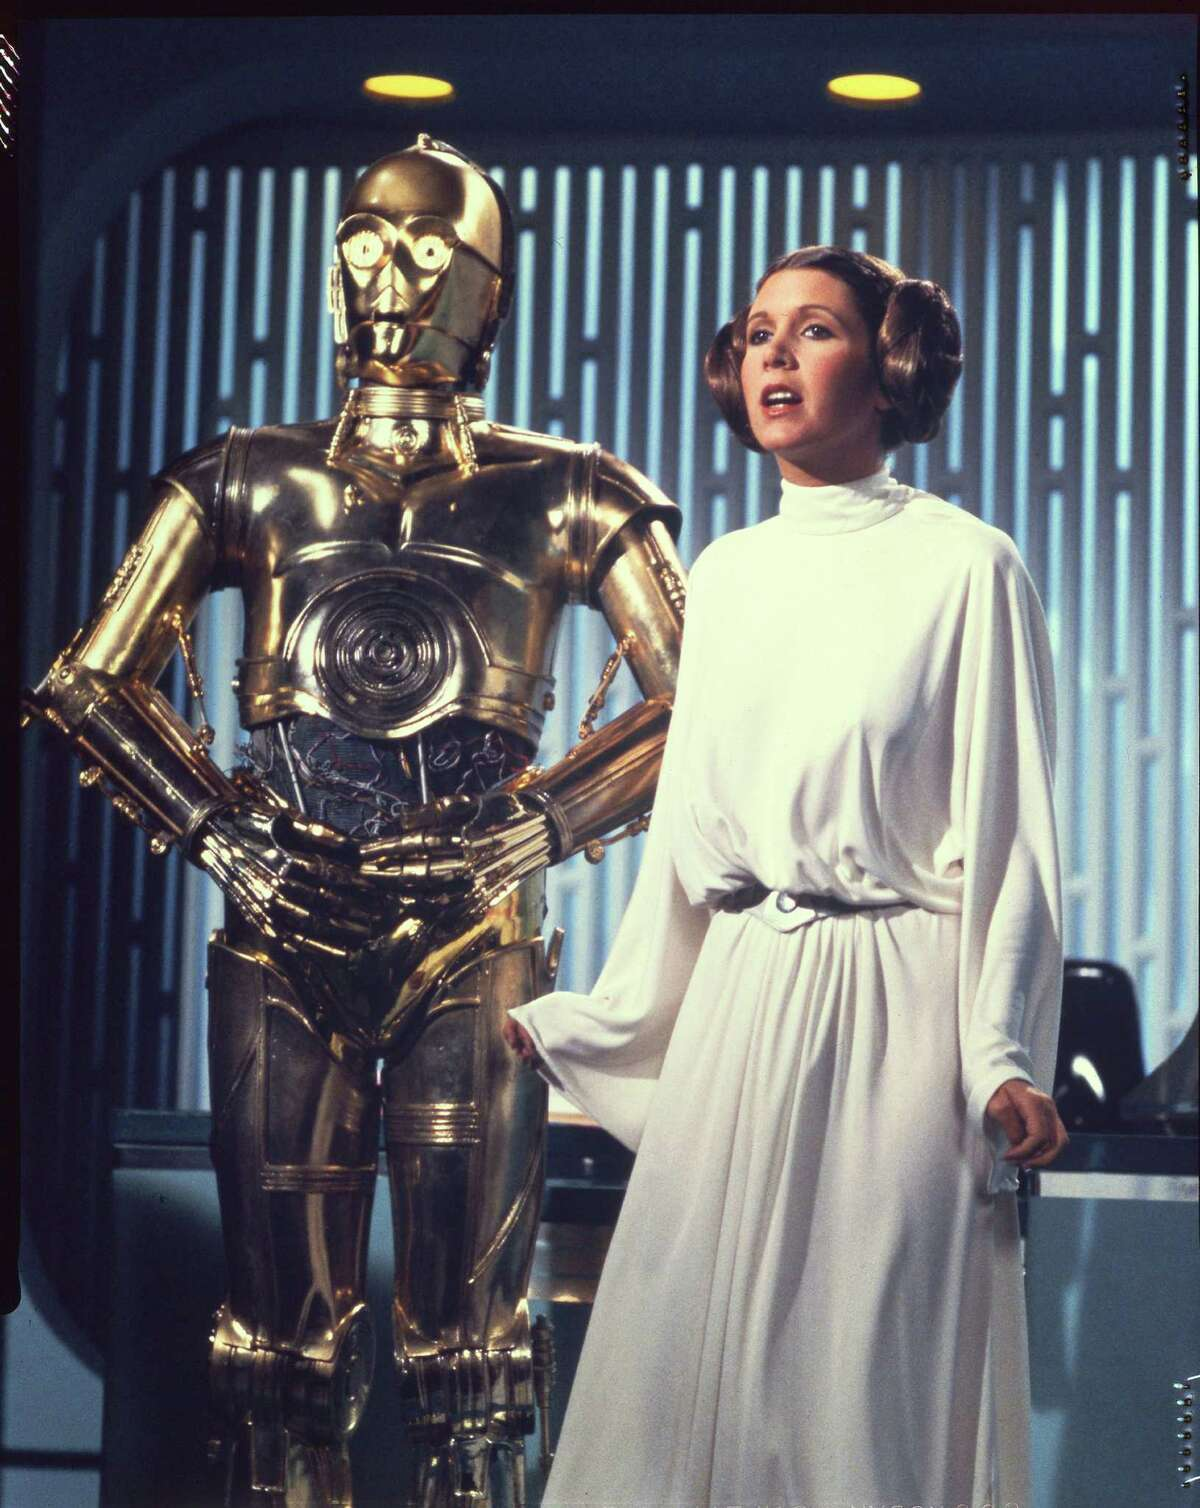 STAR WARS (1977) - See Threepio and Princess Leia (CARRIE FISHER)